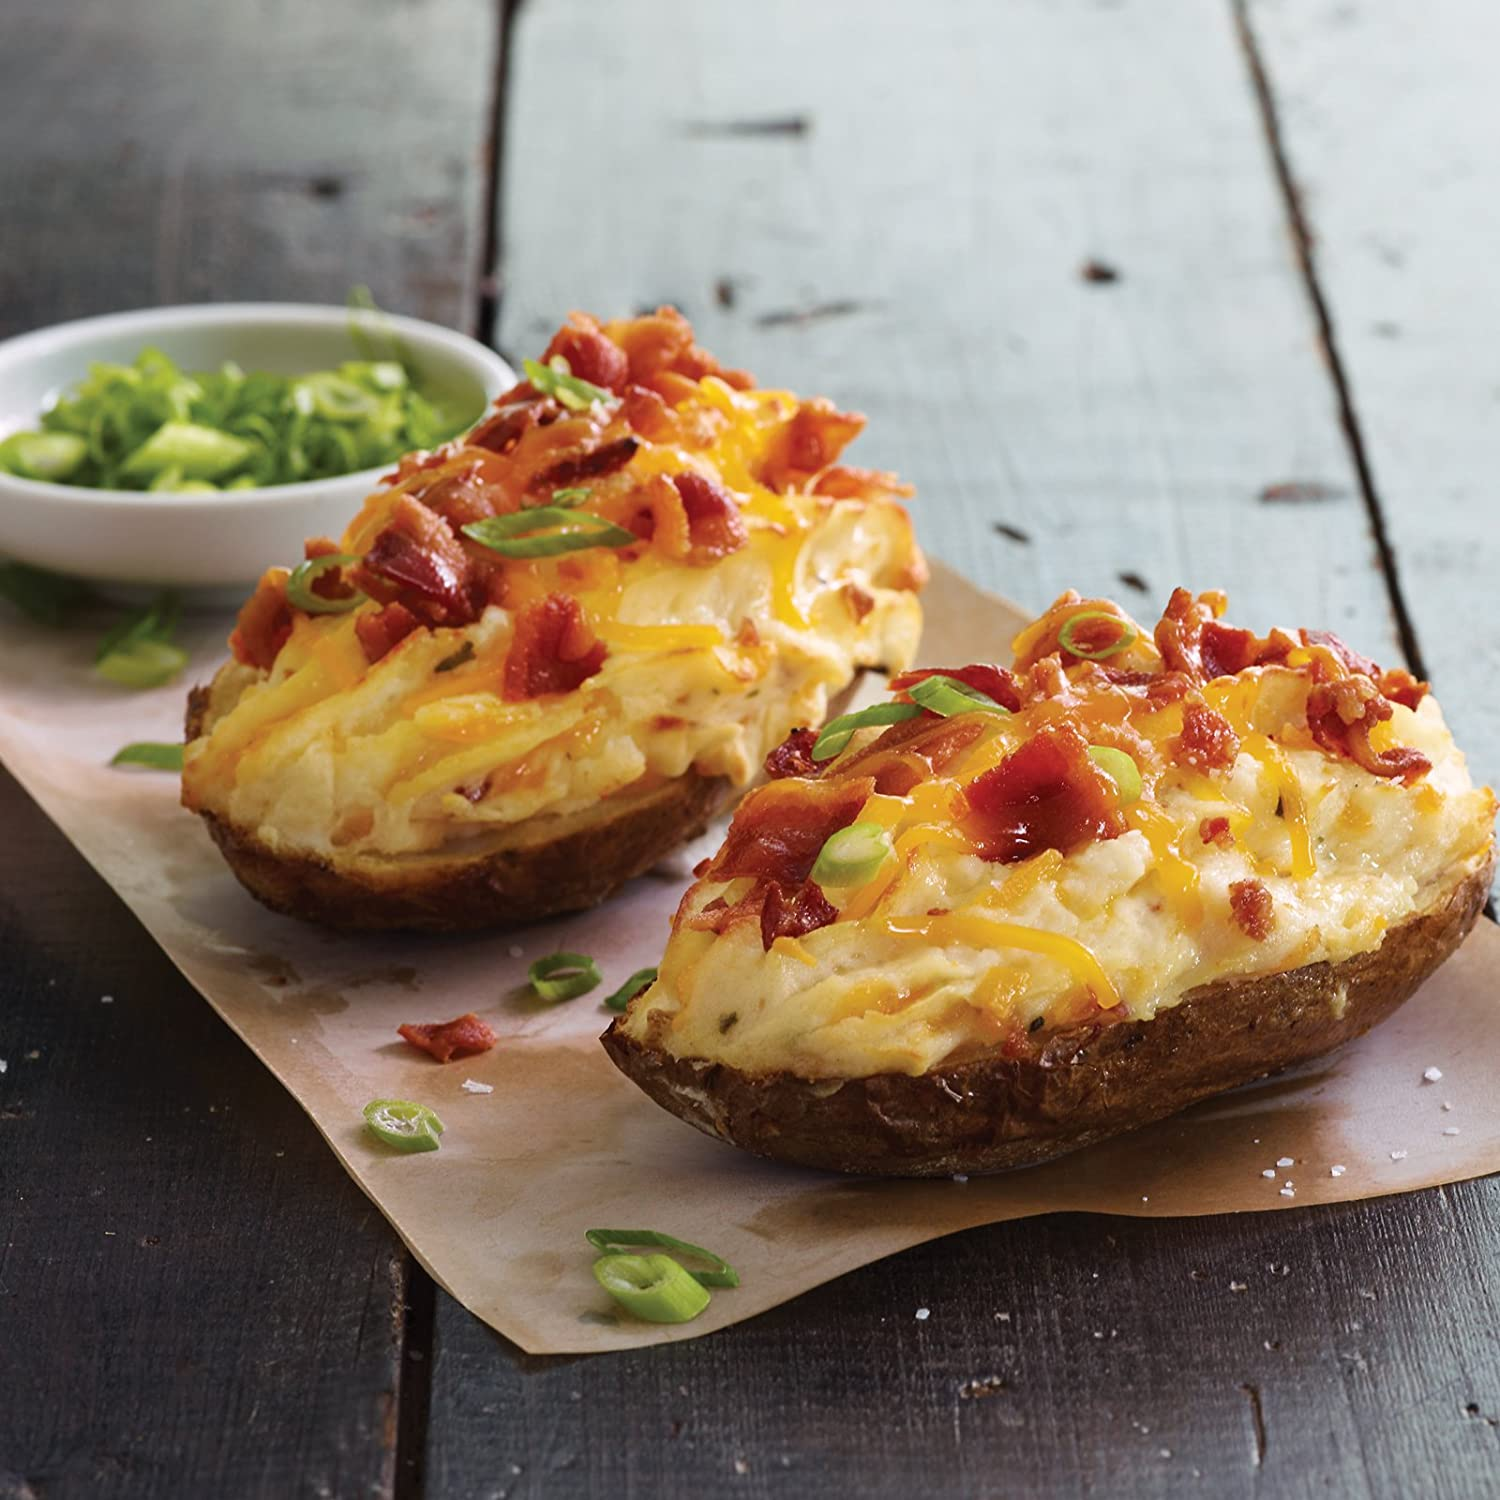 Cheddar Bacon Twice Baked Potatoes, 8 count, 5 oz each from Kansas City Steaks